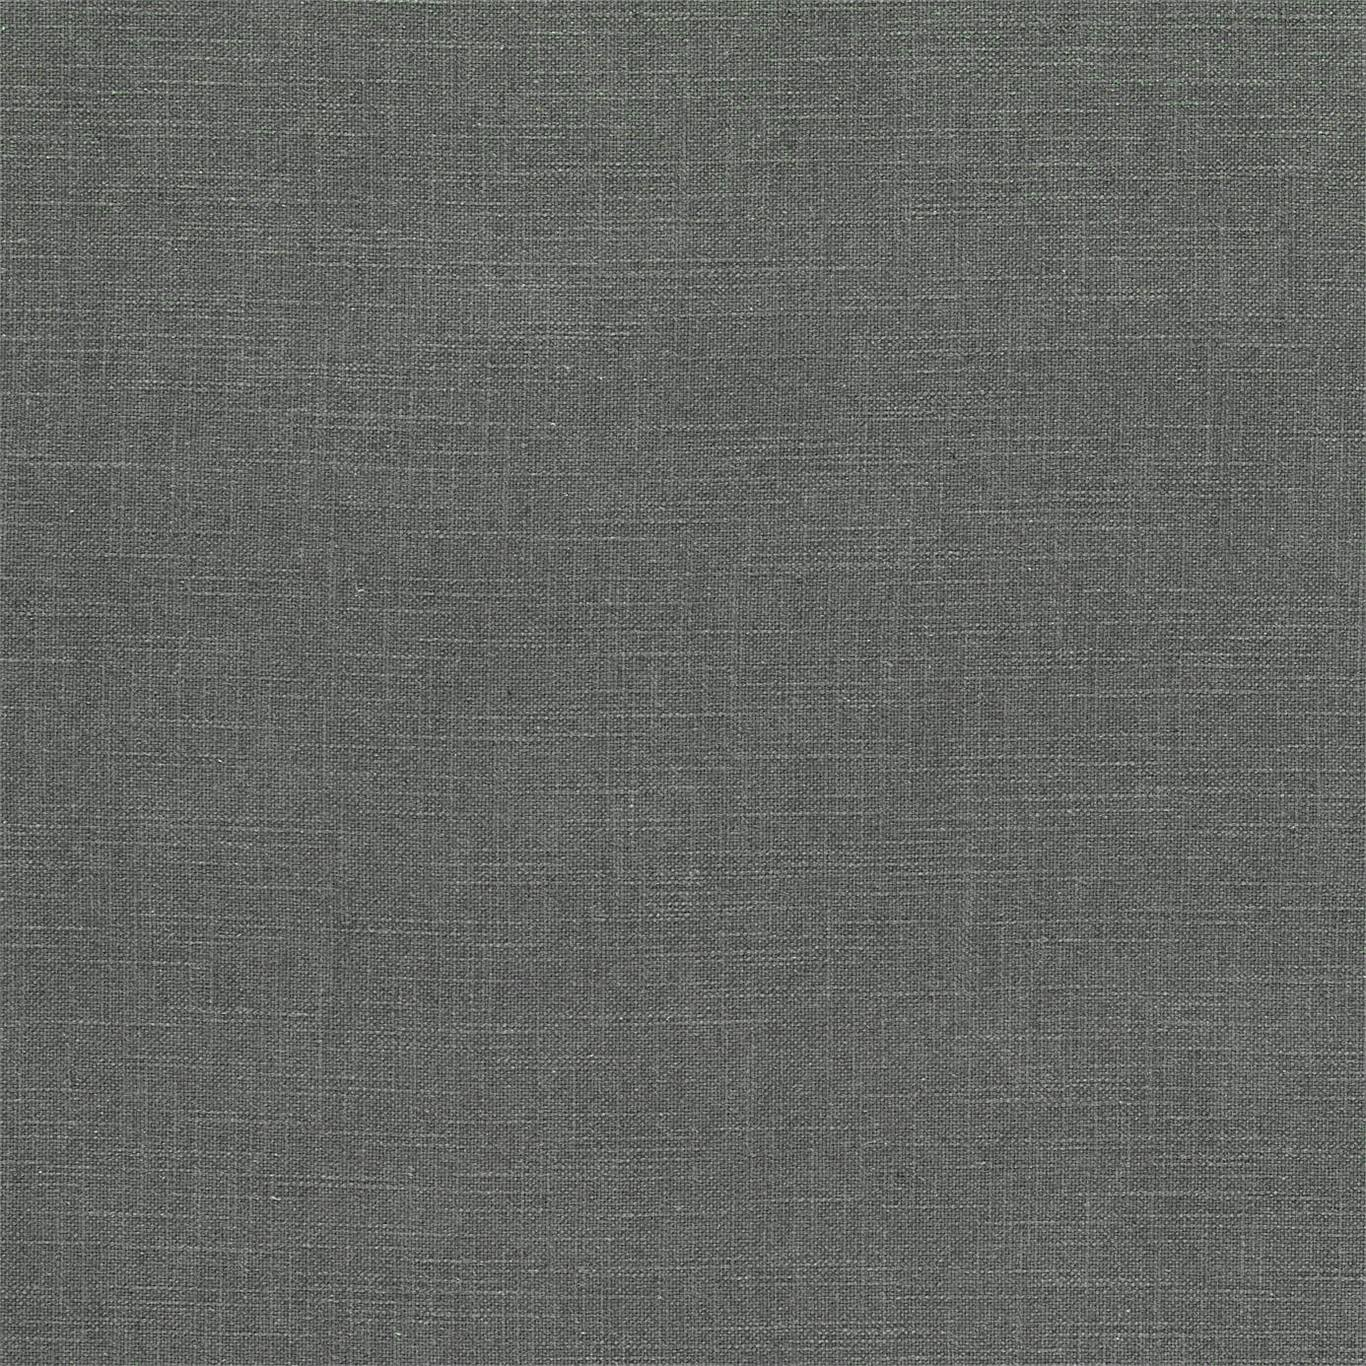 DTUC237128 Collection - Tuscany II Weaves Fabric